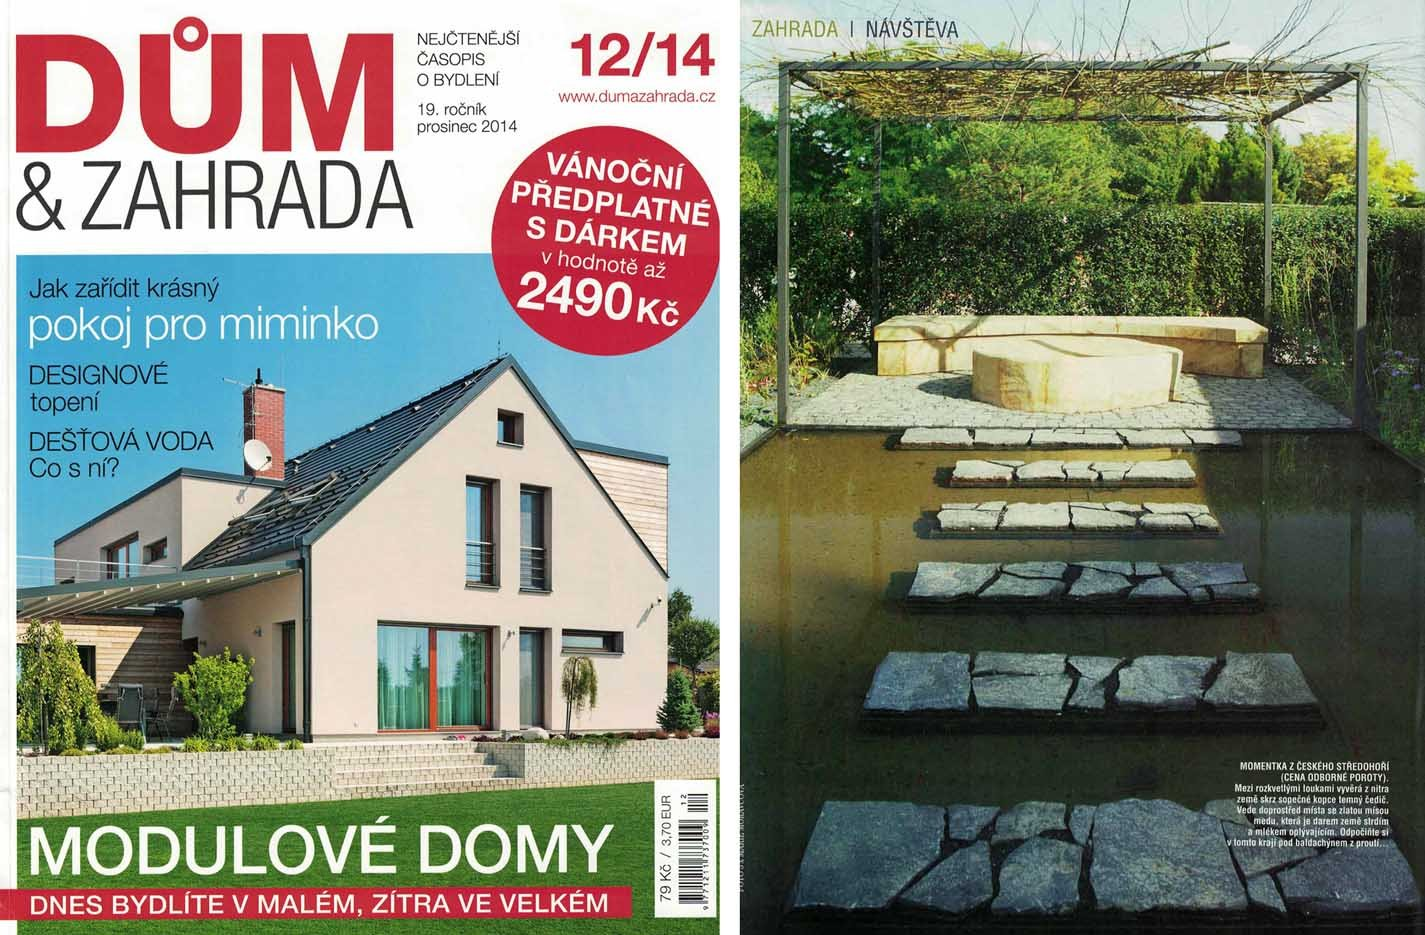 Dum a zahrada 12/2014 - Competition The Most Beautiful Garden (Bohemia Garden Exhibition)